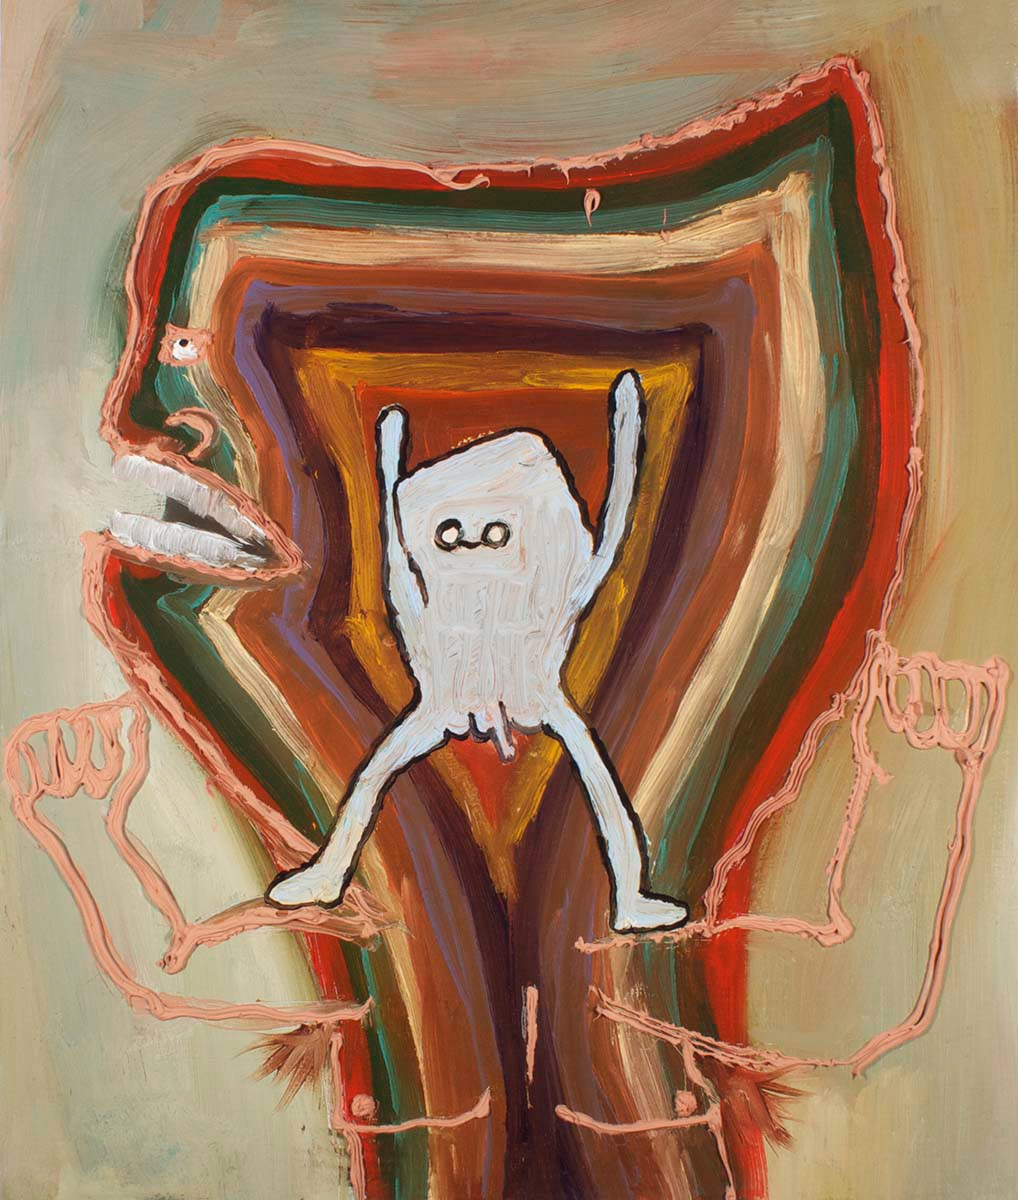 Biceptor  , 2012 oil on canvas 20 x 16 inches Private Collection, Cleveland